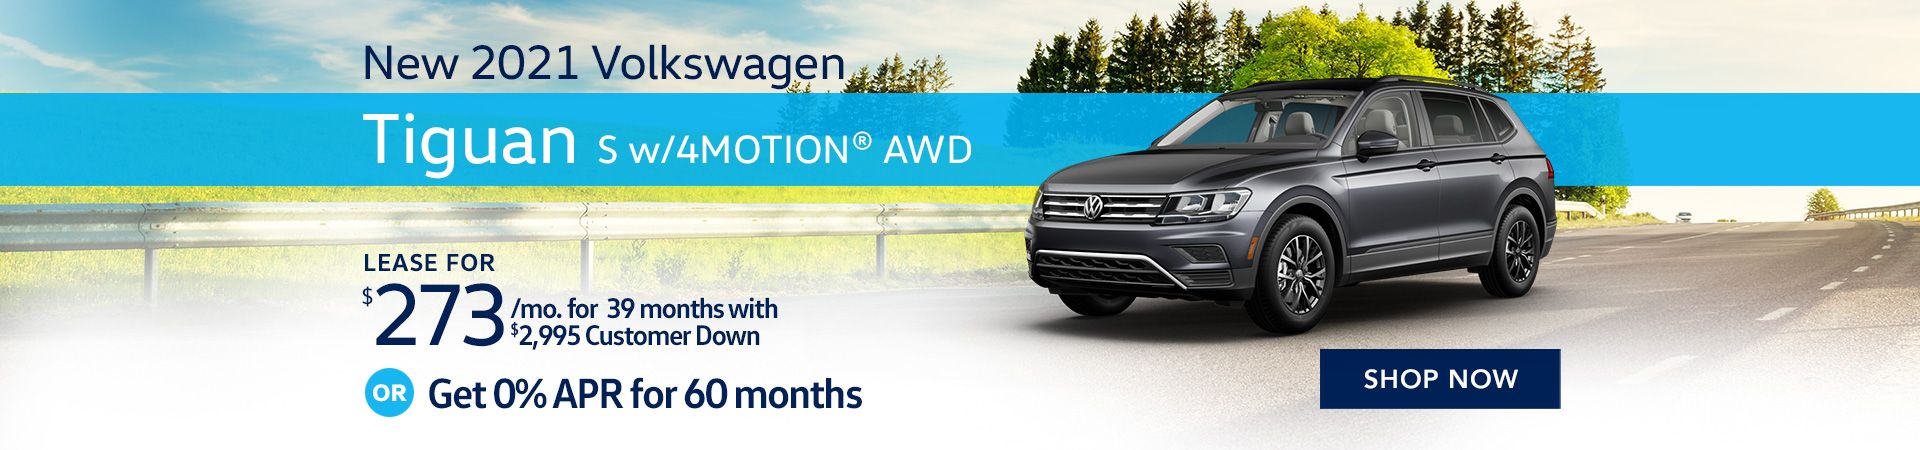 BVW_1920x450_New 2021 Volkswagen Tiguan S with 4MOTION® AWD _06'21